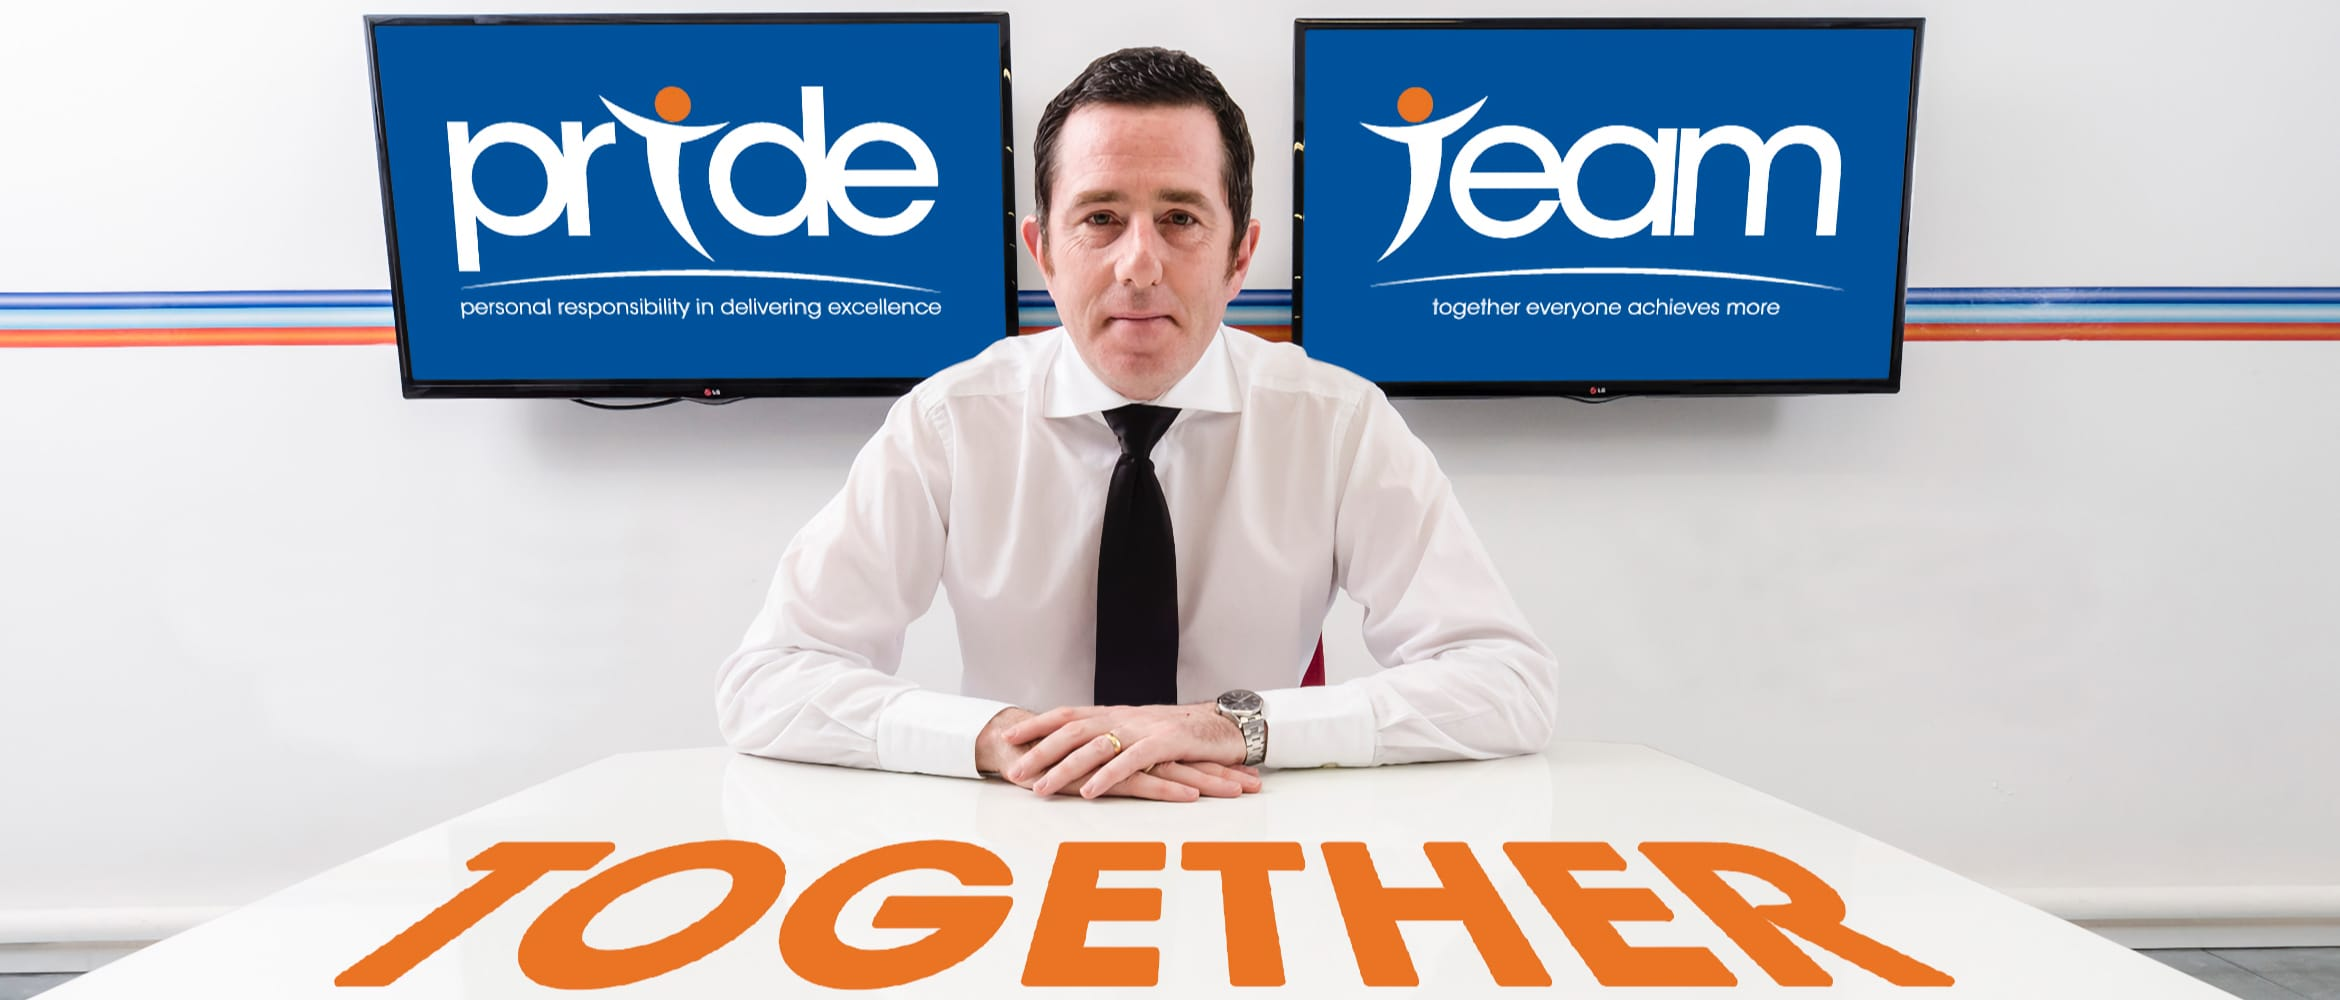 Phil Jones MBE sat at a white table with 'together' written in orange in front of him and two screens behind, one displaying 'pride' and the other displaying 'team'.